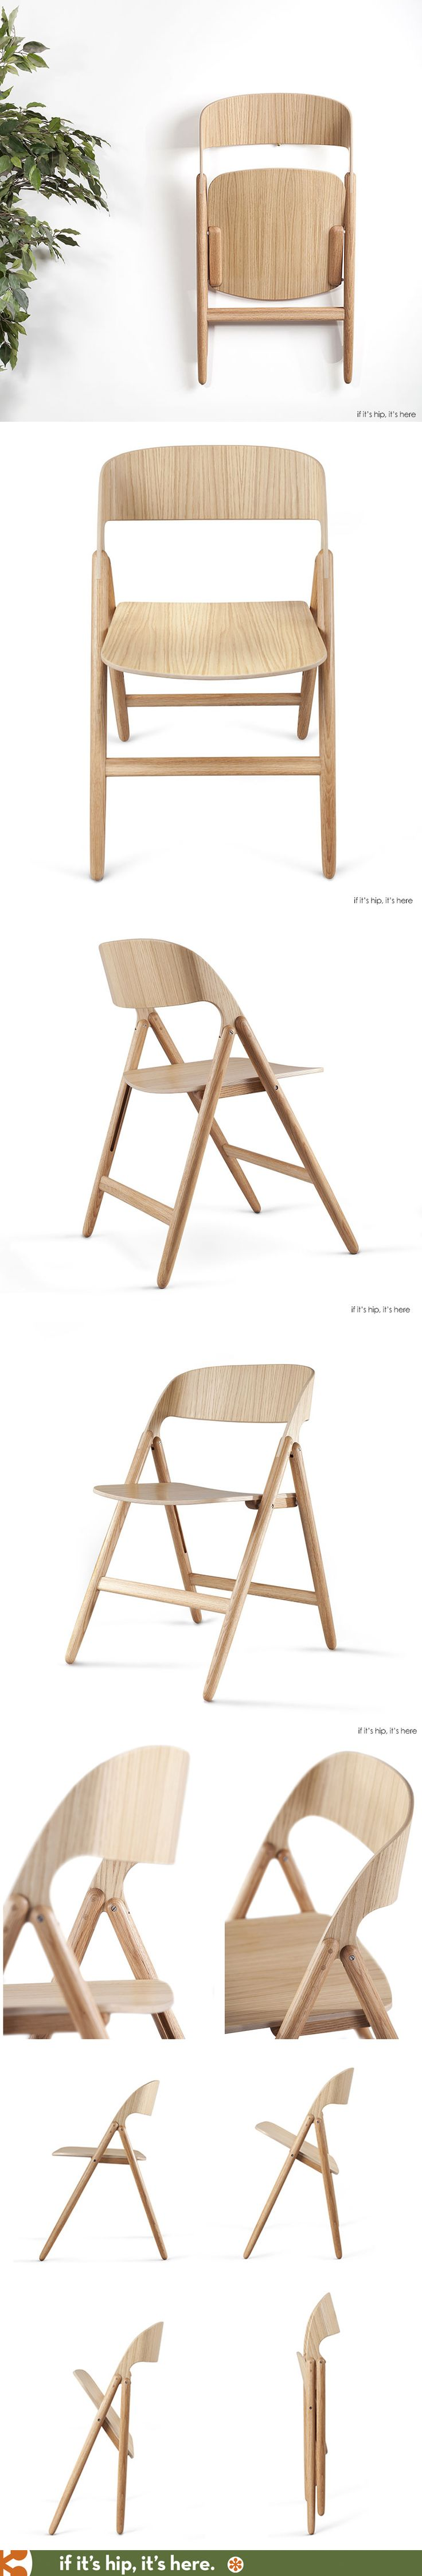 Beautiful New Wooden Folding Chair Introduced At Icff